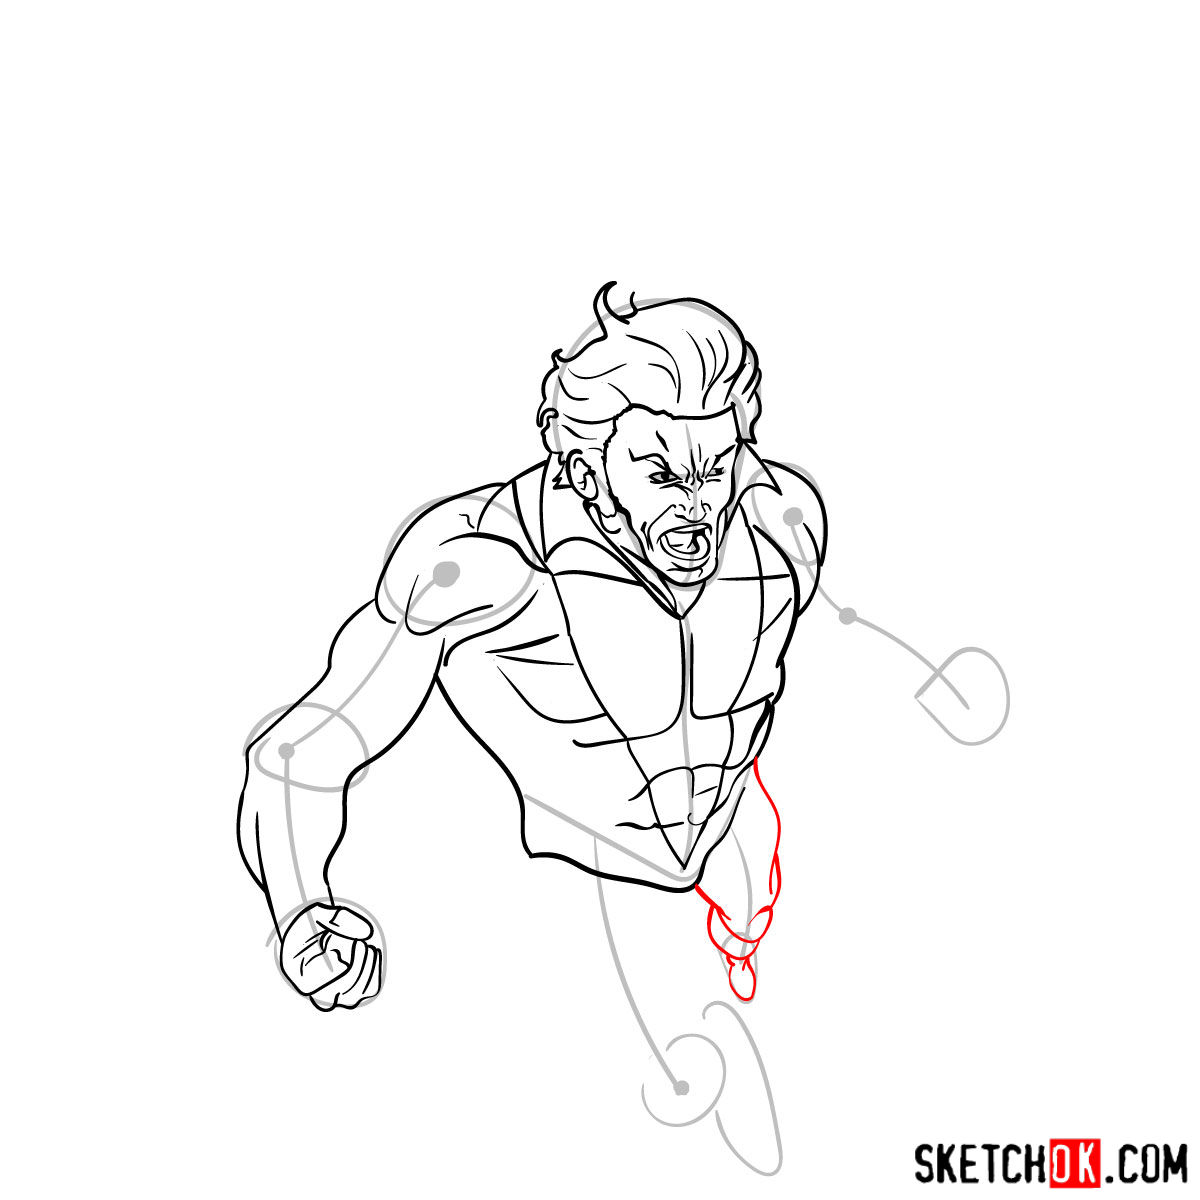 How to draw Banshee mutant from X-Men - step 10